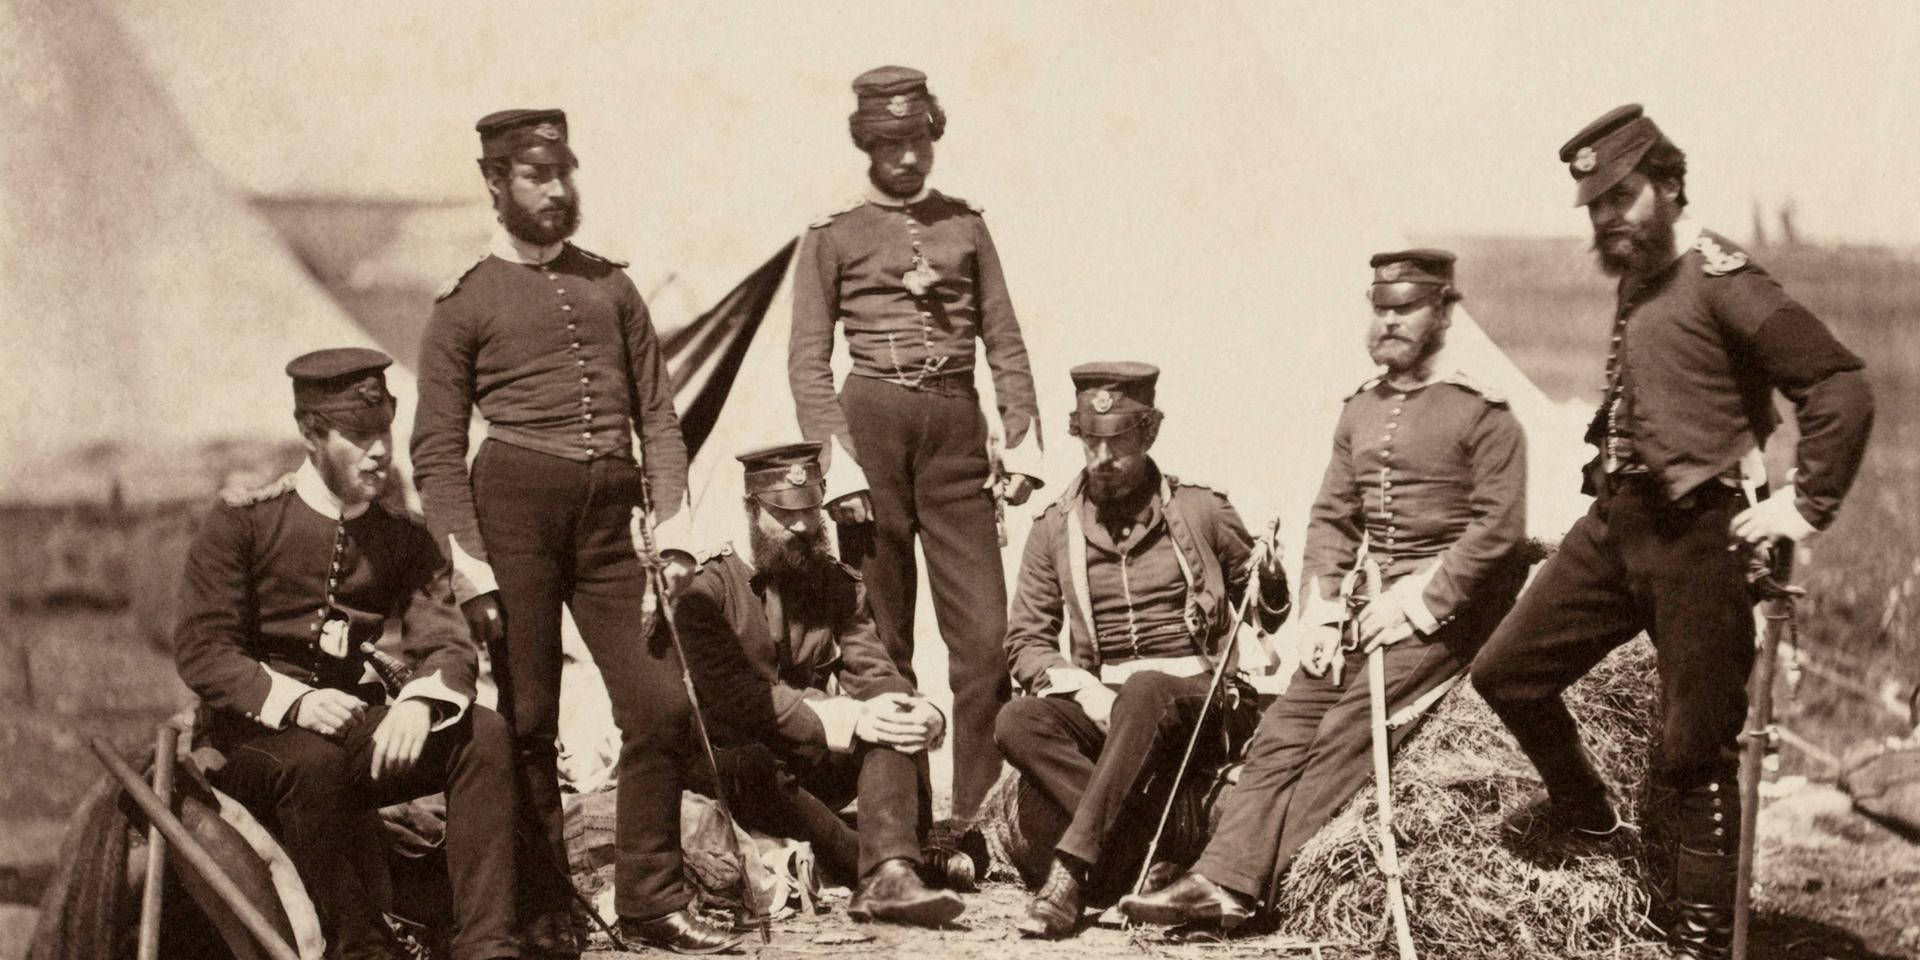 Officers of the 90th (Perthshire Volunteers) (Light Infantry) Regiment of Foot, photographed by Roger Fenton, 1855